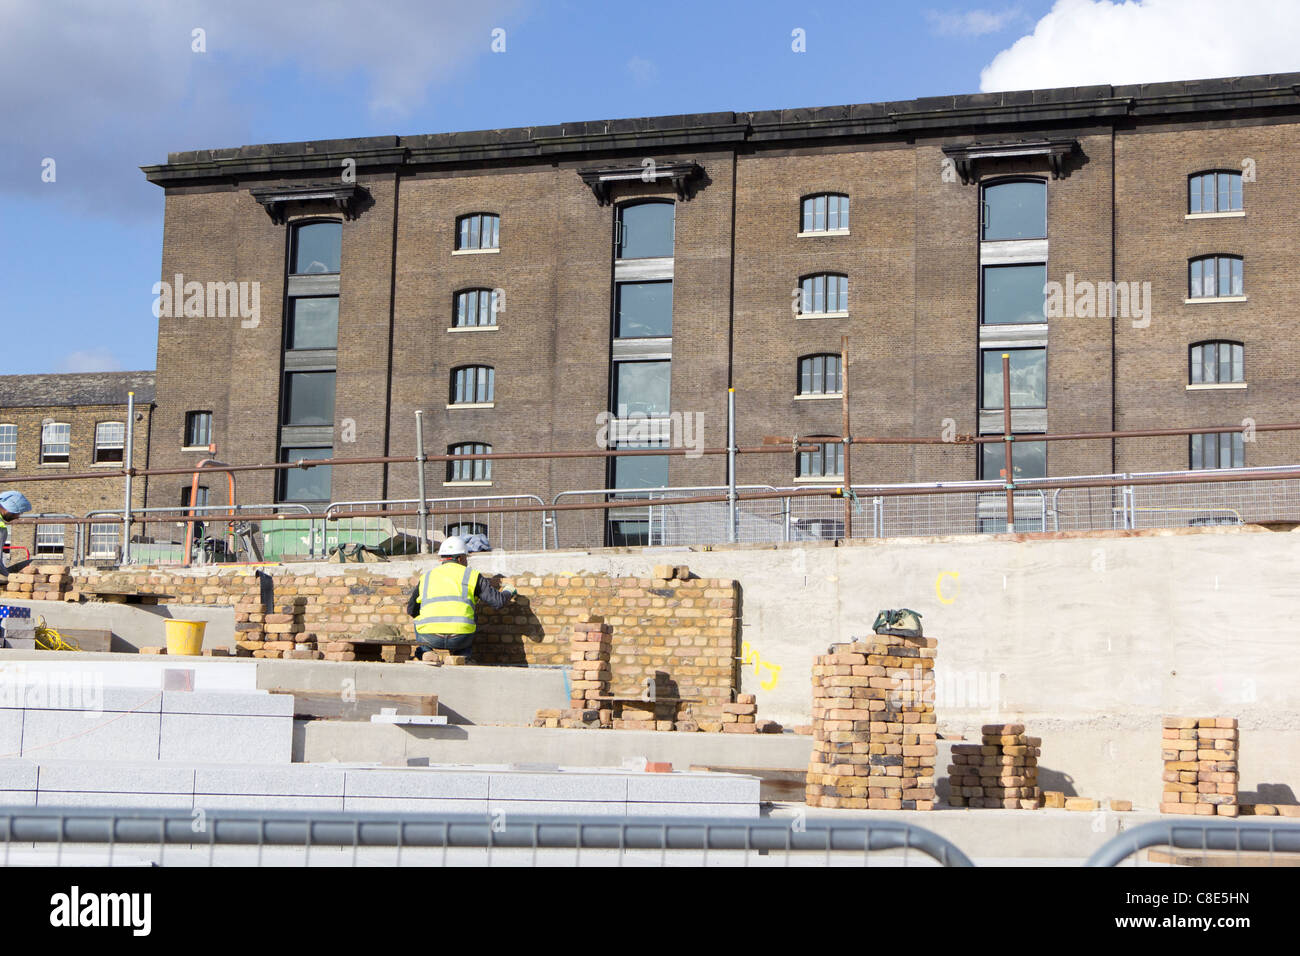 Hard landscaping work being carried out on the banks of the Regents Canal at the Kings Cross development, - Stock Image